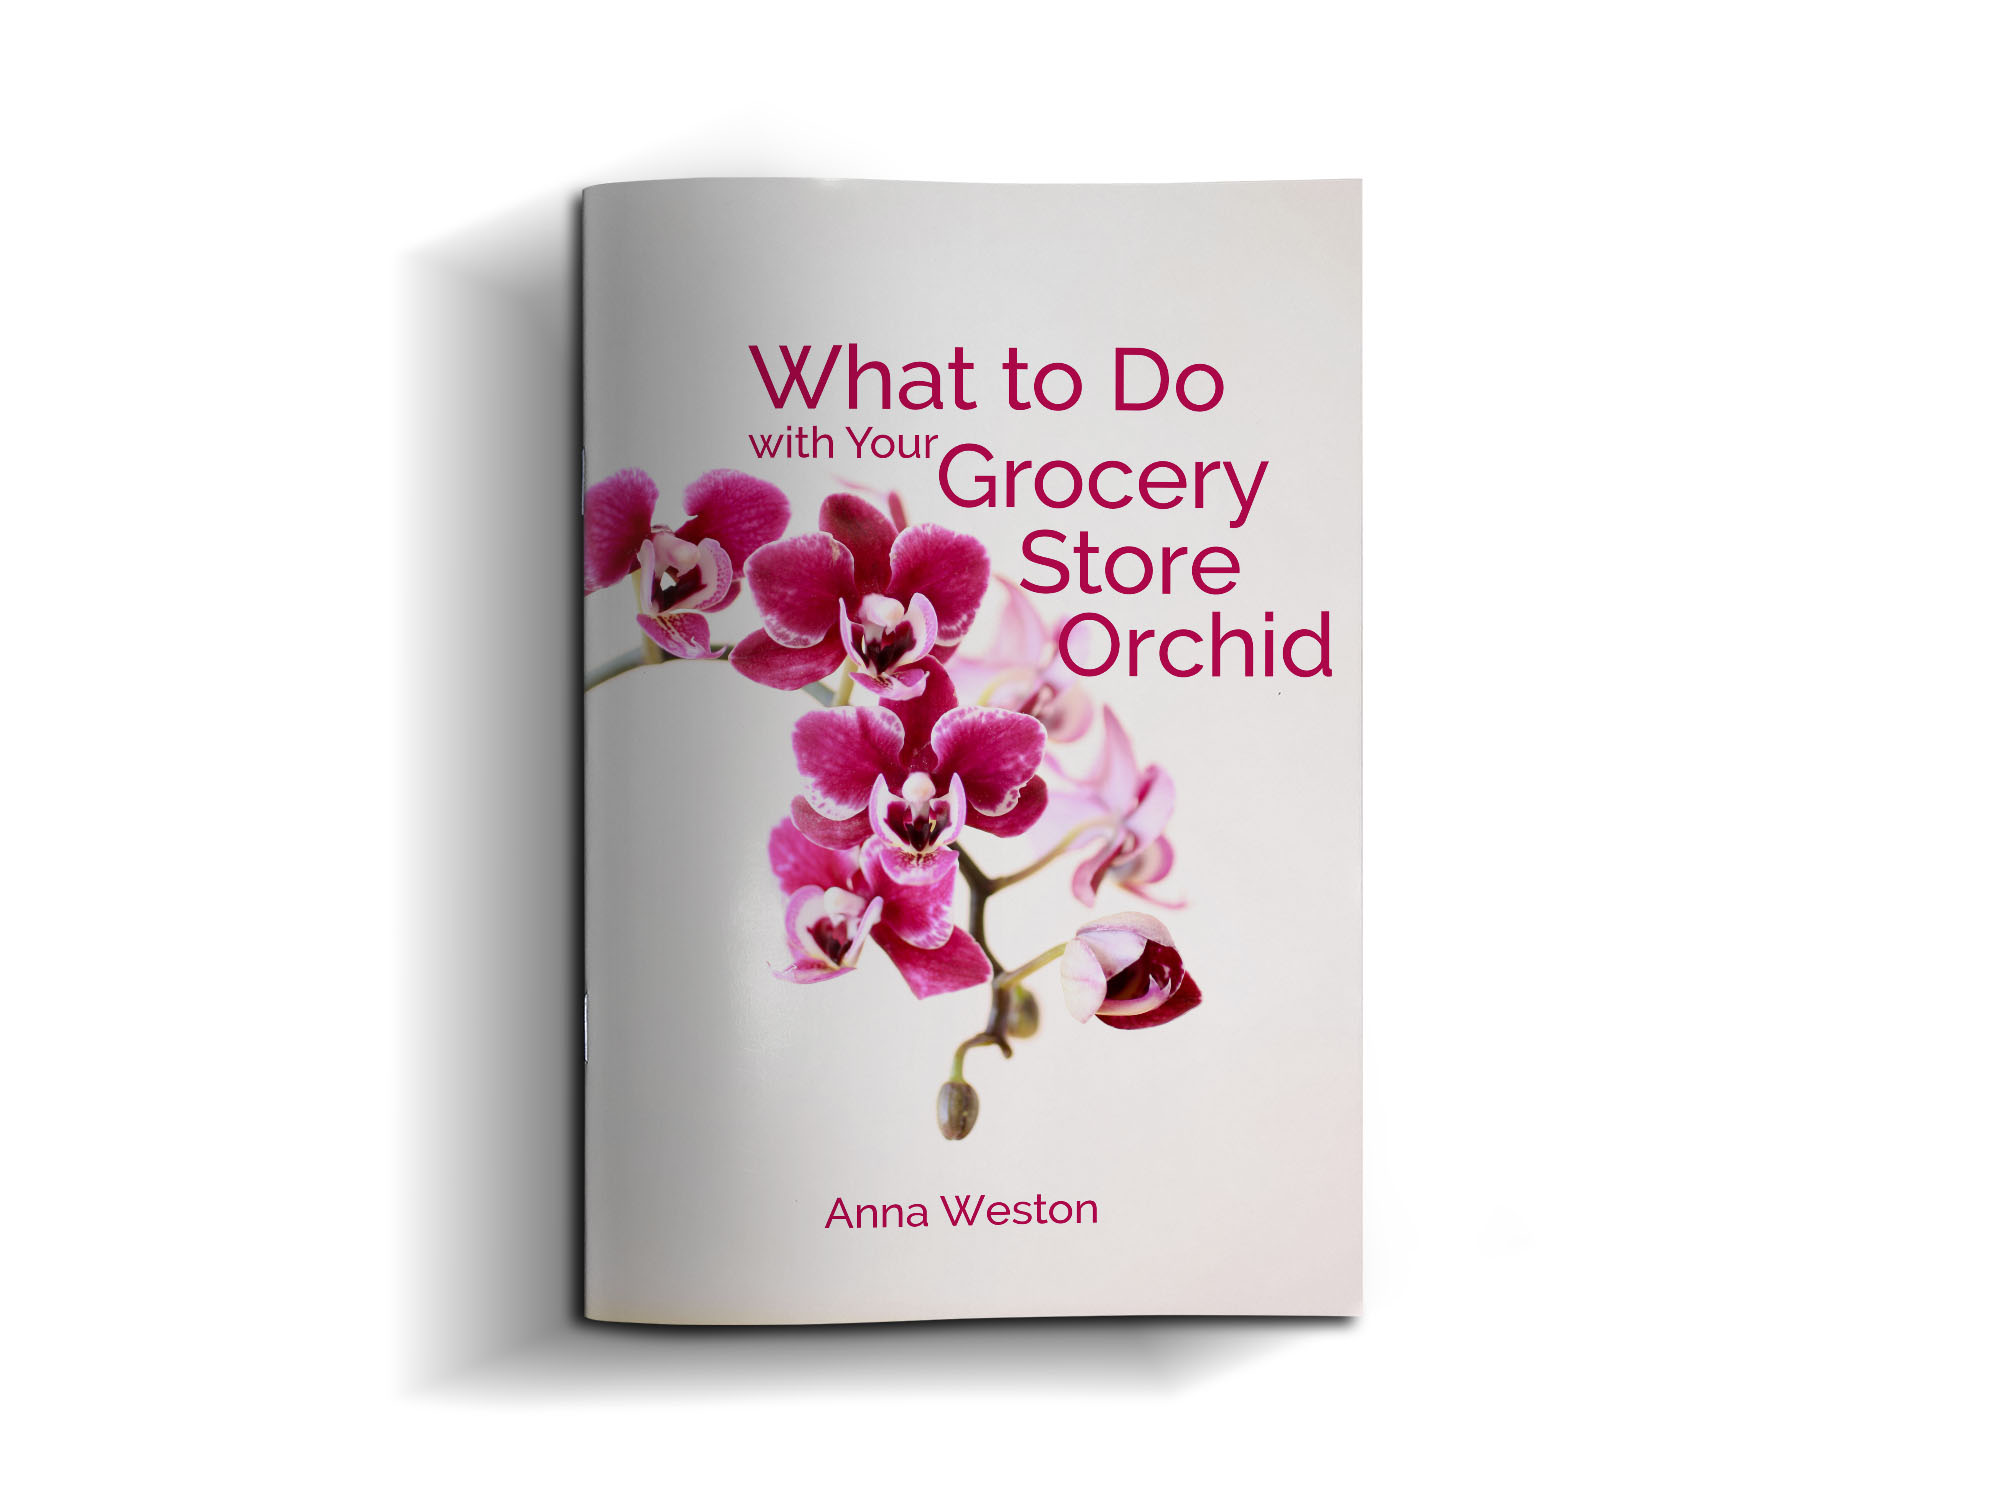 What to Do with Your Grocery Store Orchid